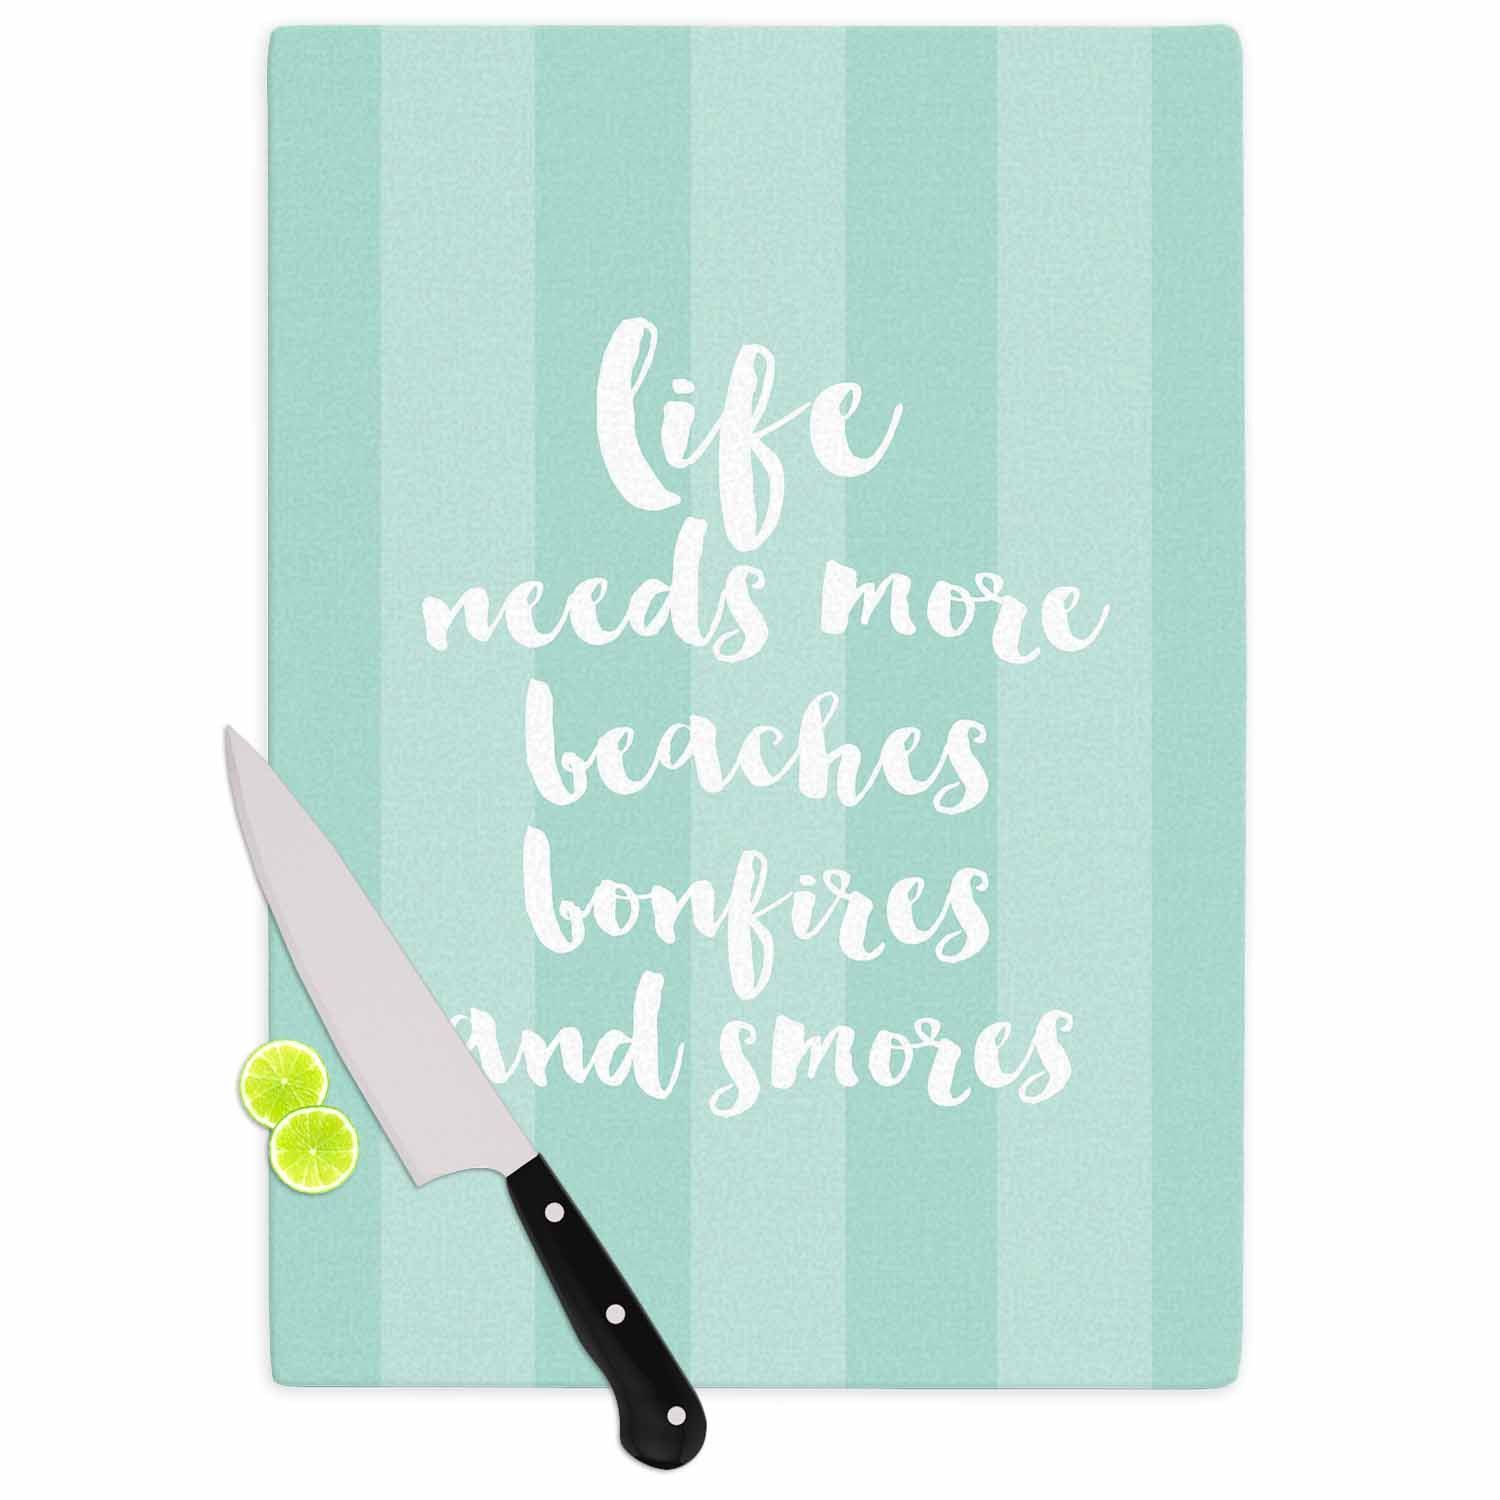 sylvia cook beaches bonfires mint green typography cutting